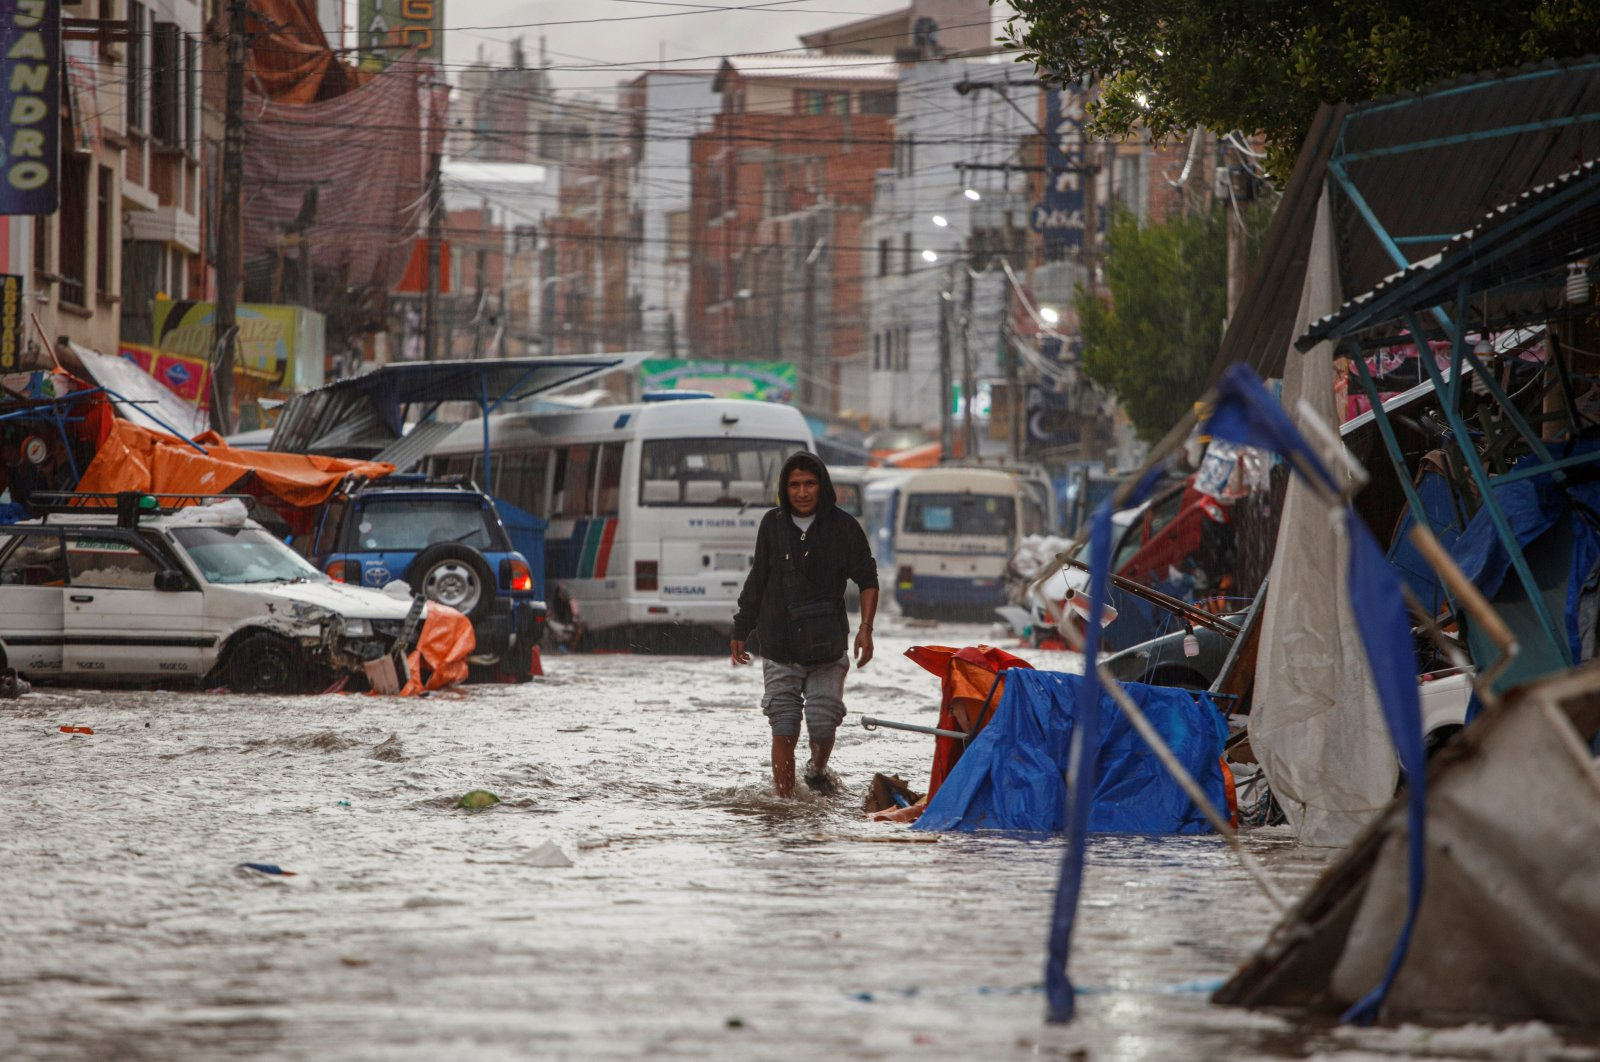 A man walks along a street flooded by heavy rains in Sucre, Bolivia January 4, 2021. (Correo del Sur/Carlos Rodriguez/Handout via REUTERS)